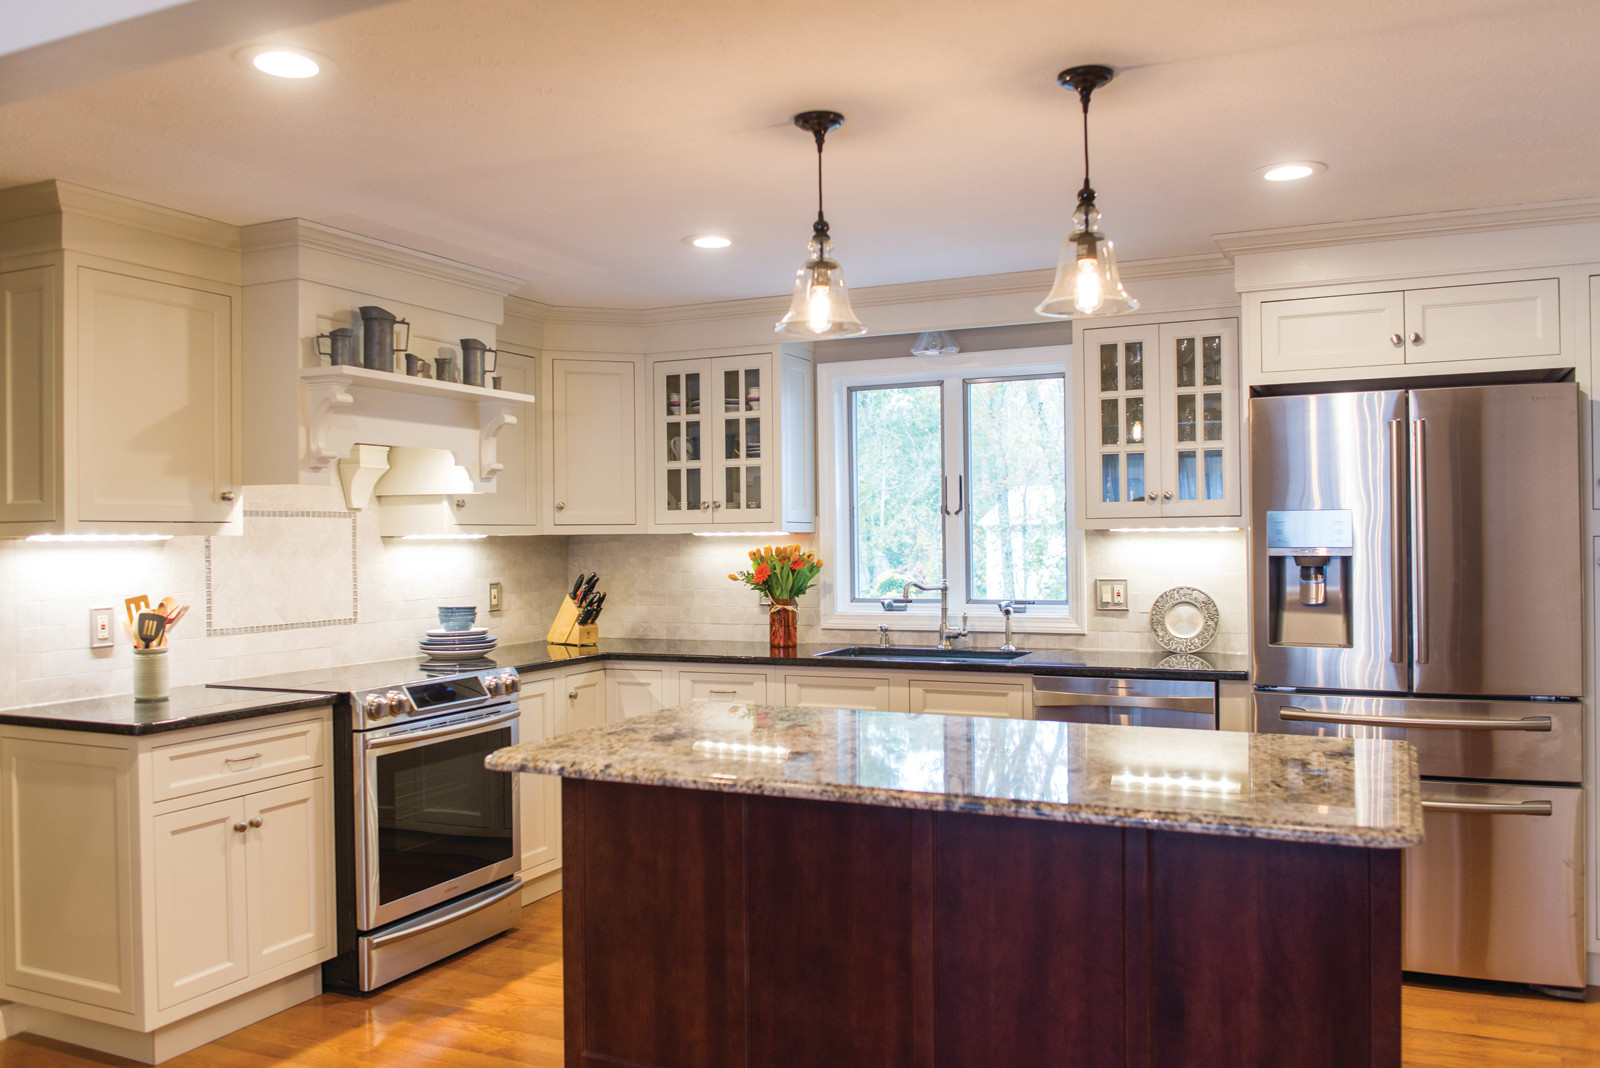 To see more remodeled kitchens such as this, constructed by the talented team at McCormick's Home Improvement, Inc, visit their website at www.MHI-RI.com or call for your free consultation today at 463-7674.